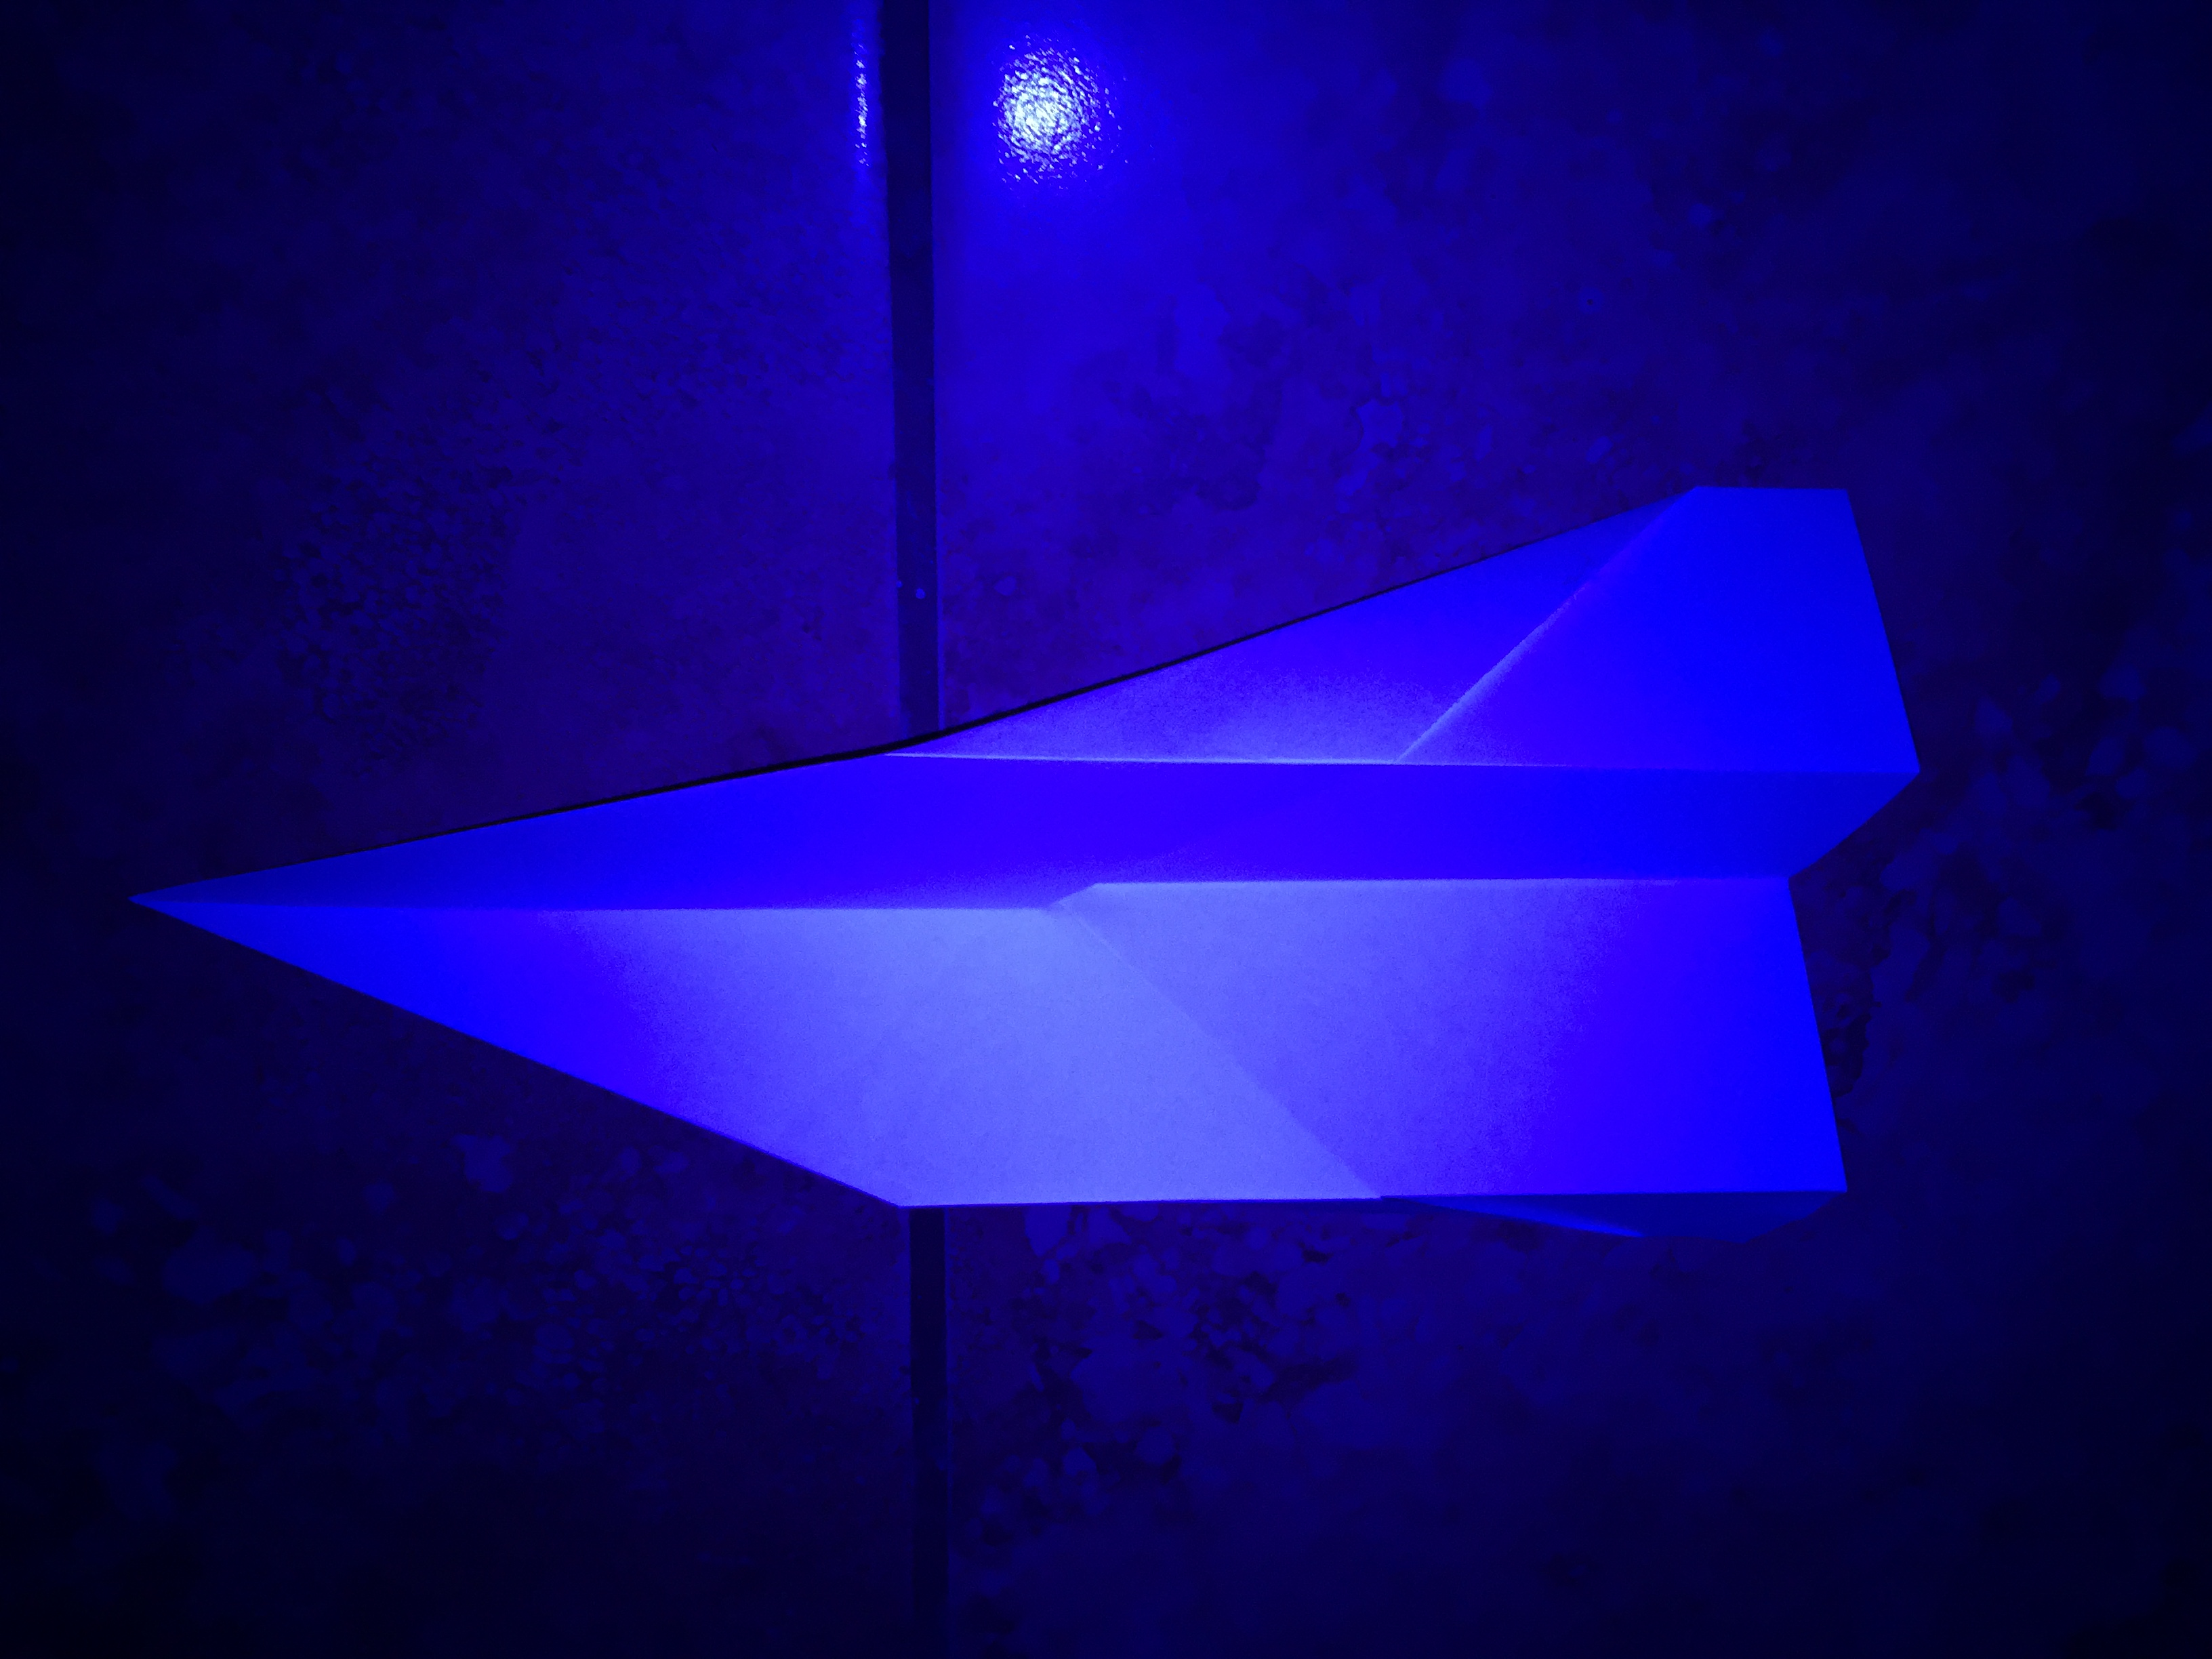 Paper airplane under black light